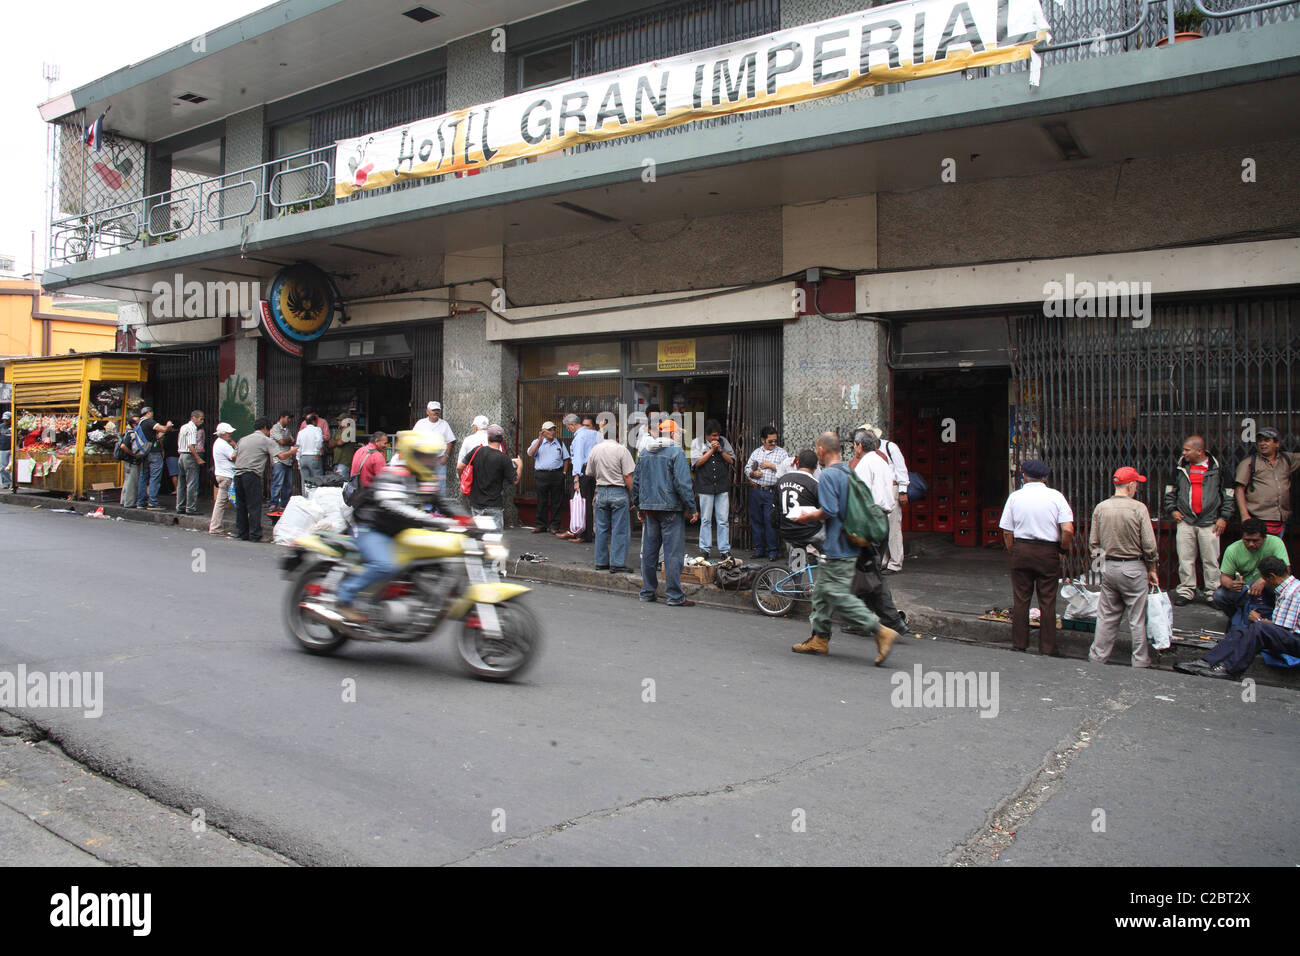 Costa Rica men waiting for a job on a street in San Jose. - Stock Image